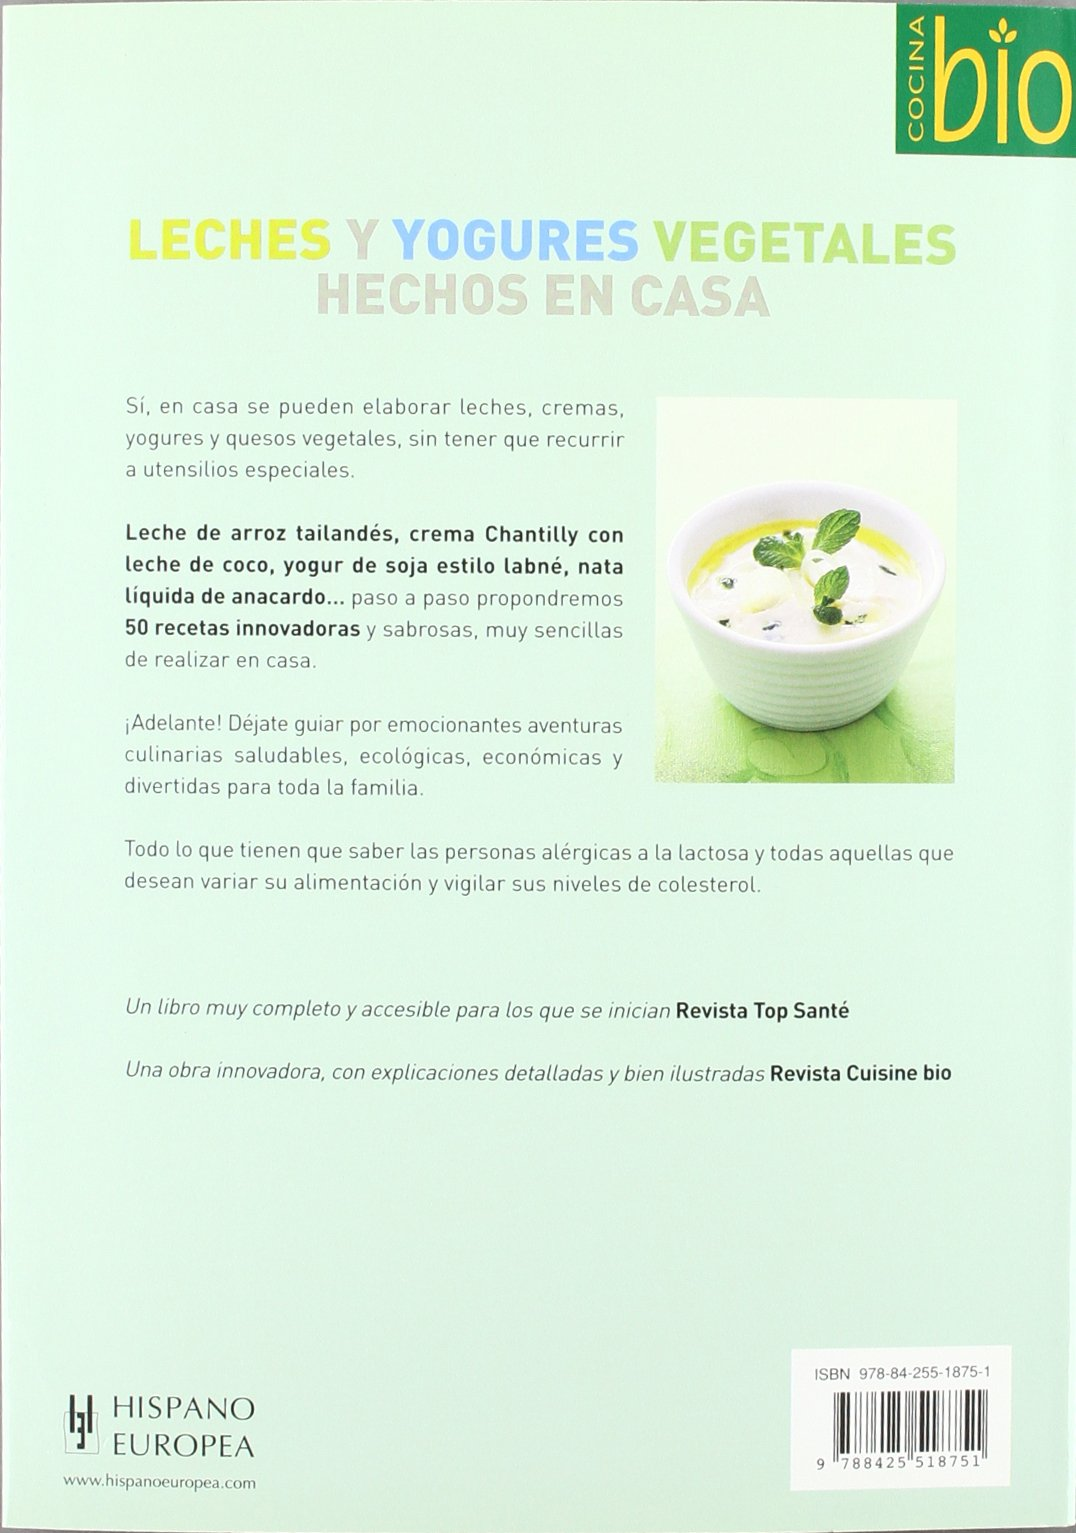 Leches y yogures vegetales hechos en casa. (Cocina Bio / Wholesome Foods) (Spanish Edition): Anne Brunner: 9788425518751: Amazon.com: Books